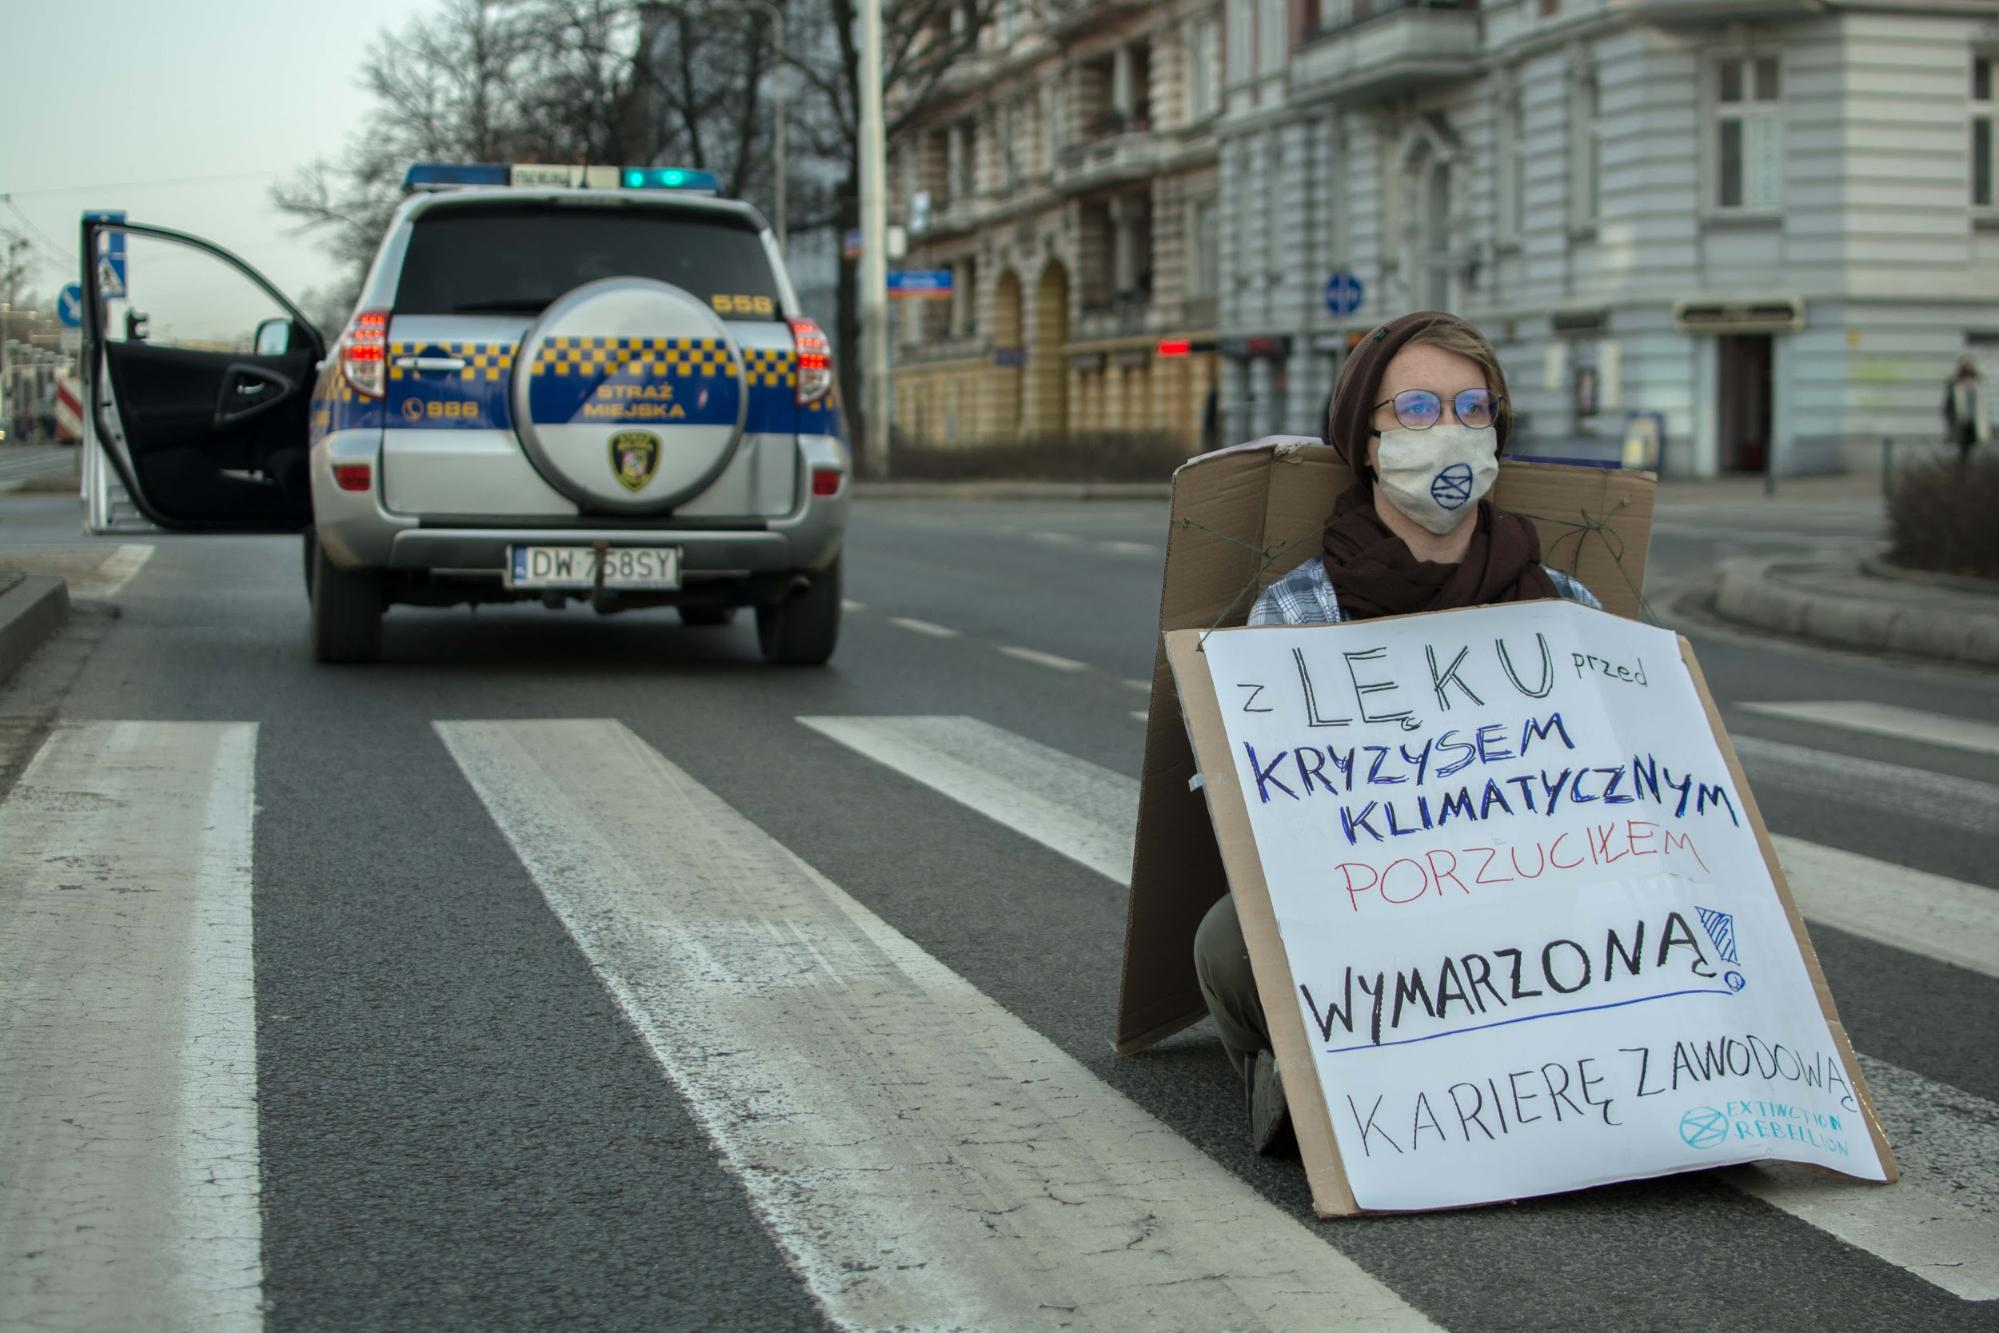 A Rebellion of One in Wrocław. Lone rebels (with hidden support teams) blocked roads across Poland. The banner: 'Climate crisis fears made me drop my dream career'. Photo: cyjon & Alicja Kozuchowska